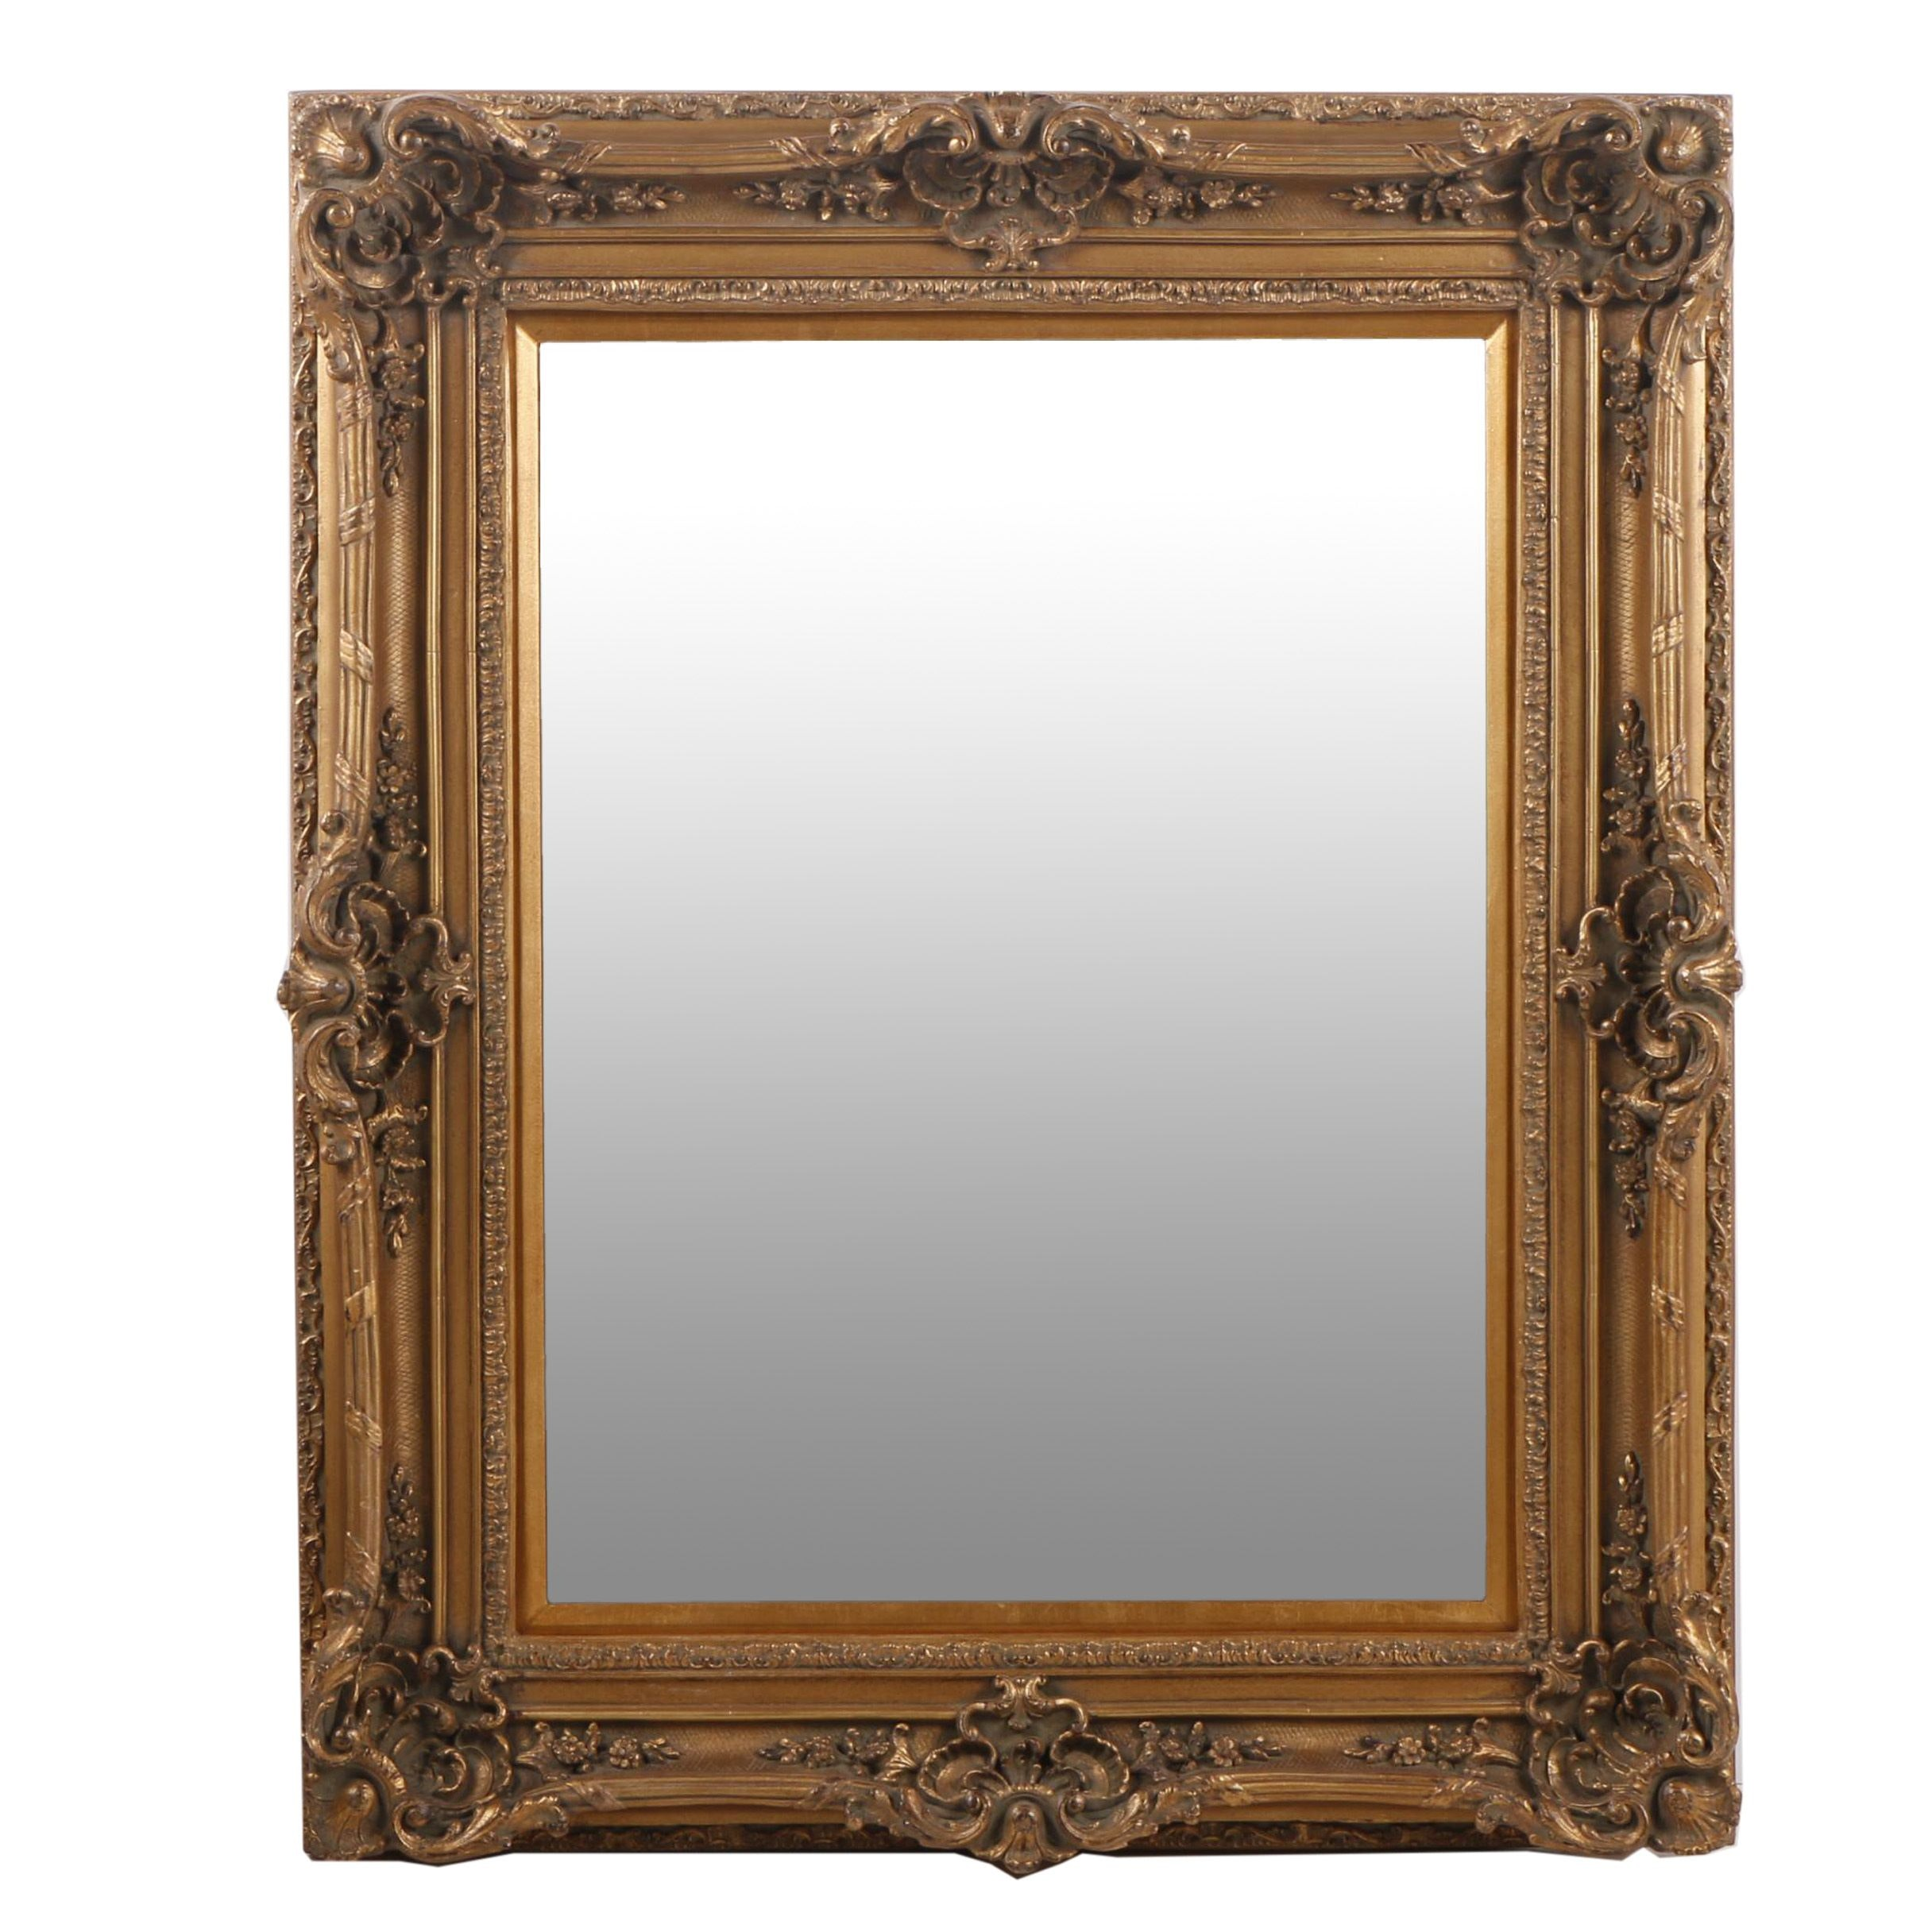 Renaissance Gallery Wall Mirror with Wood Frame